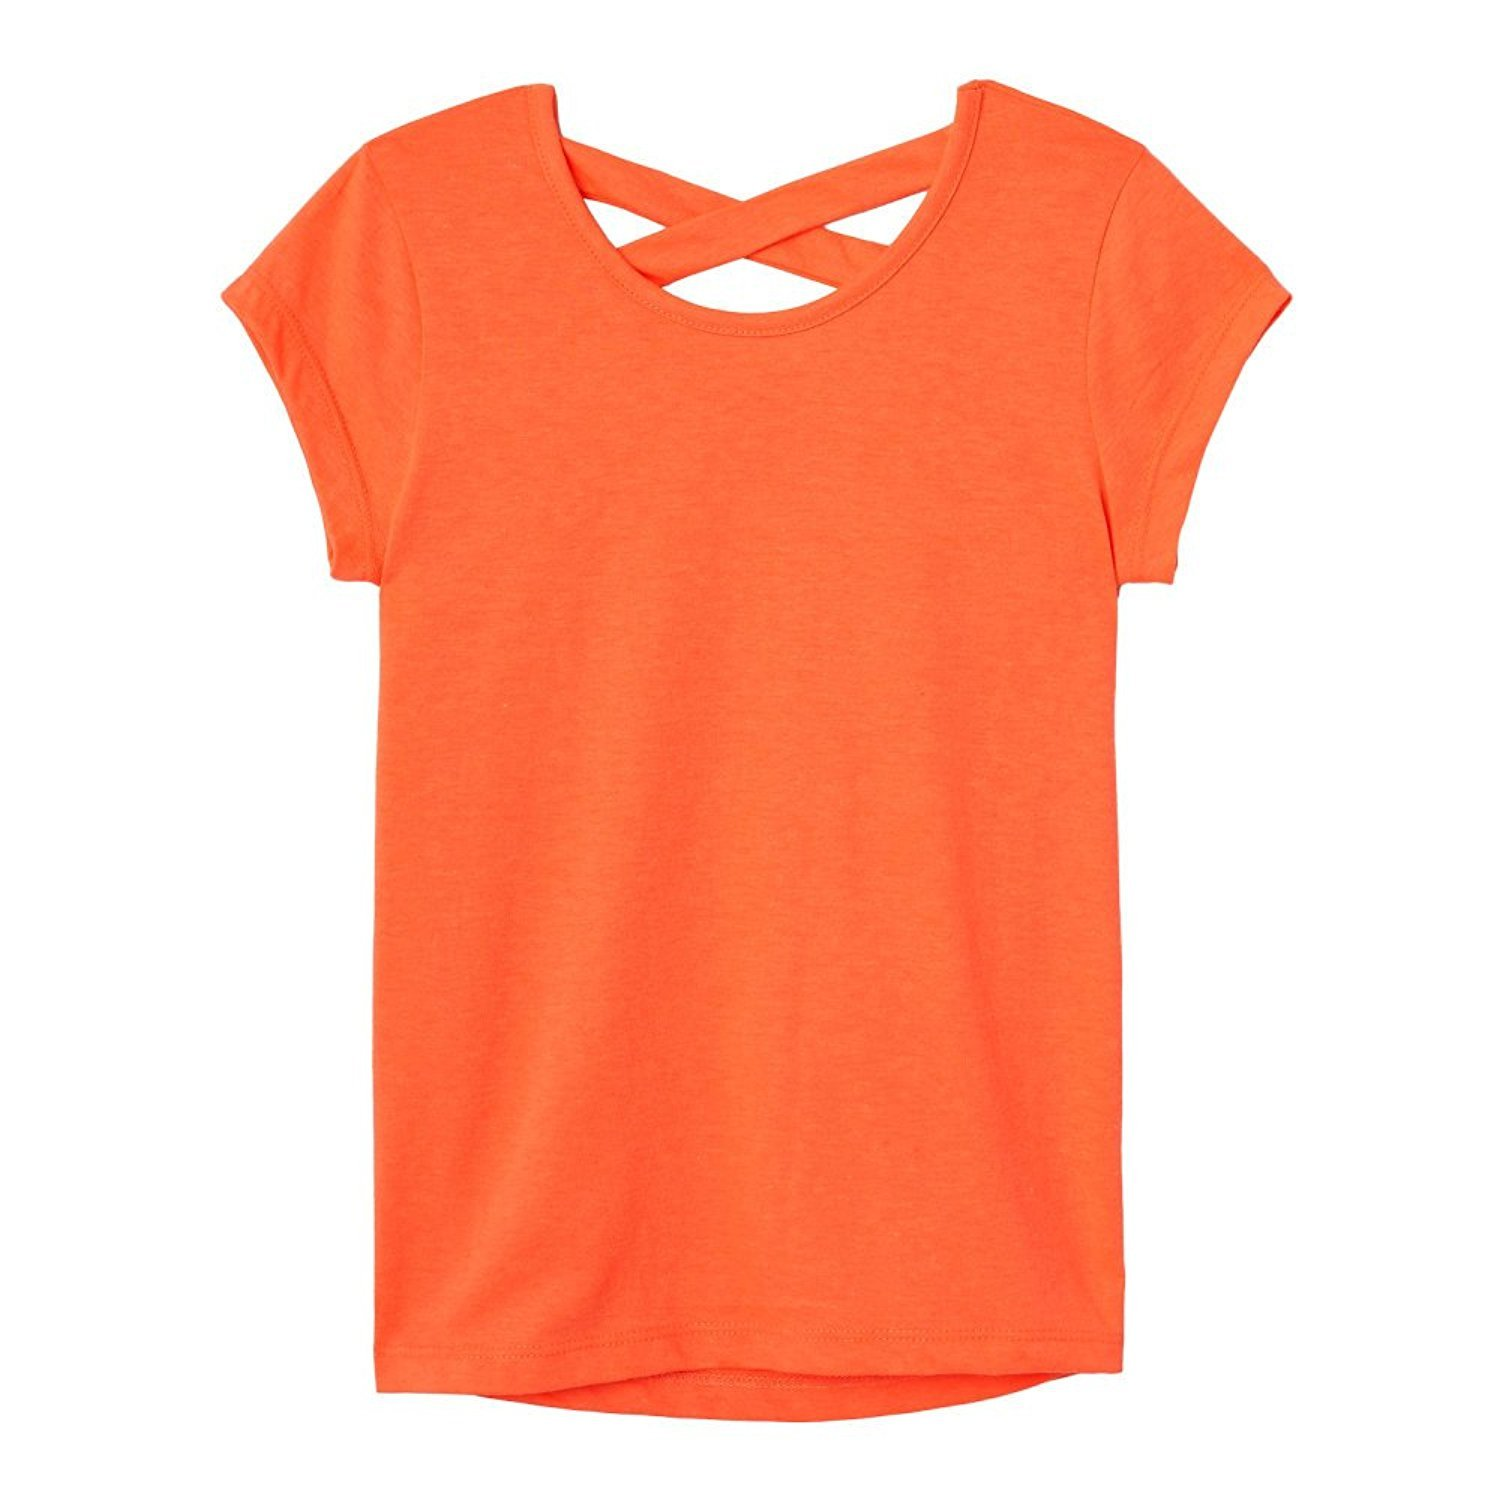 French Toast Girls' Big Short Sleeve Cross Back Top, Fiery Coral, M (7/8)